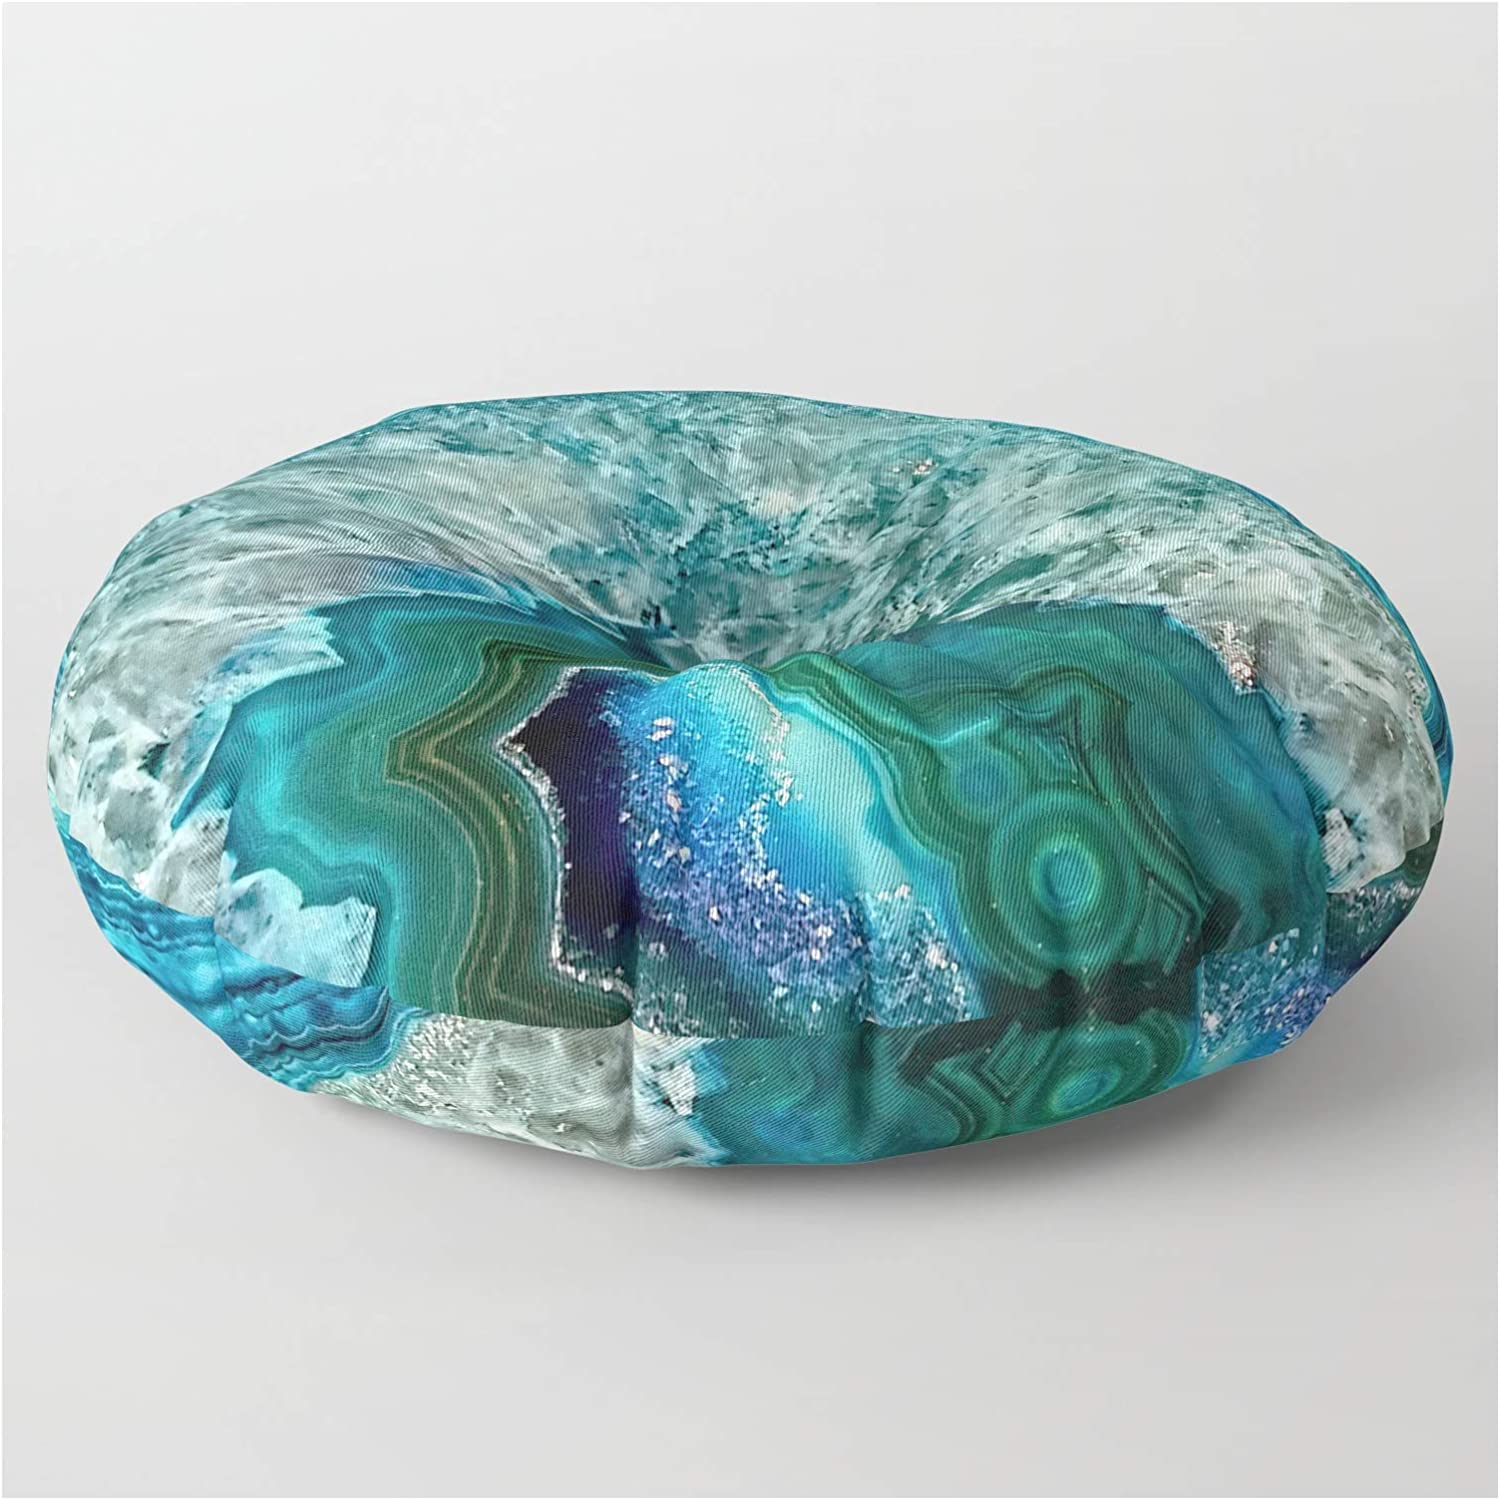 Inventory cleanup selling sale Society6 Aqua Turquoise Agate Mineral Gem New Free Shipping on UtArt Floo Stone by